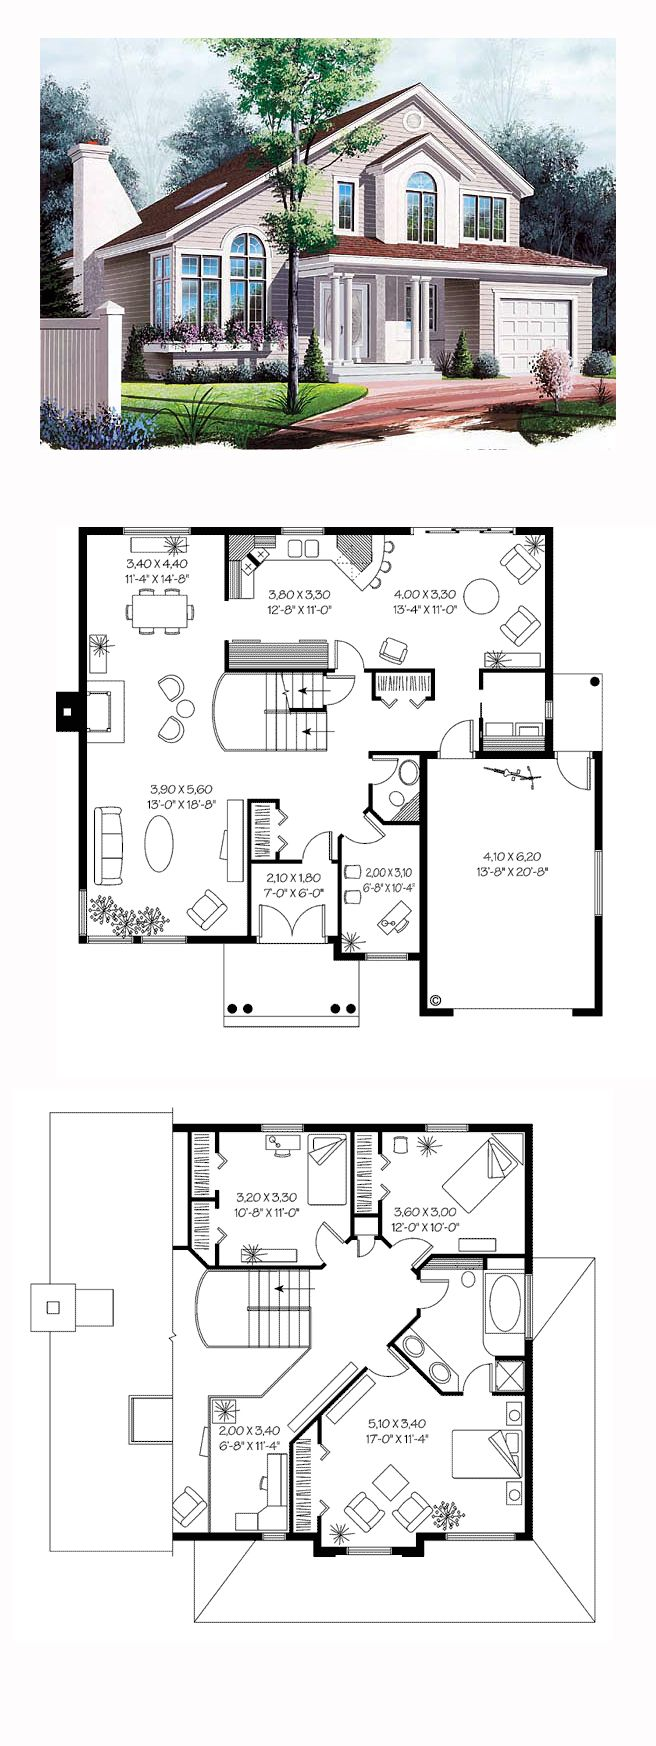 45 best saltbox house plans images on pinterest saltbox for Saltbox house plan